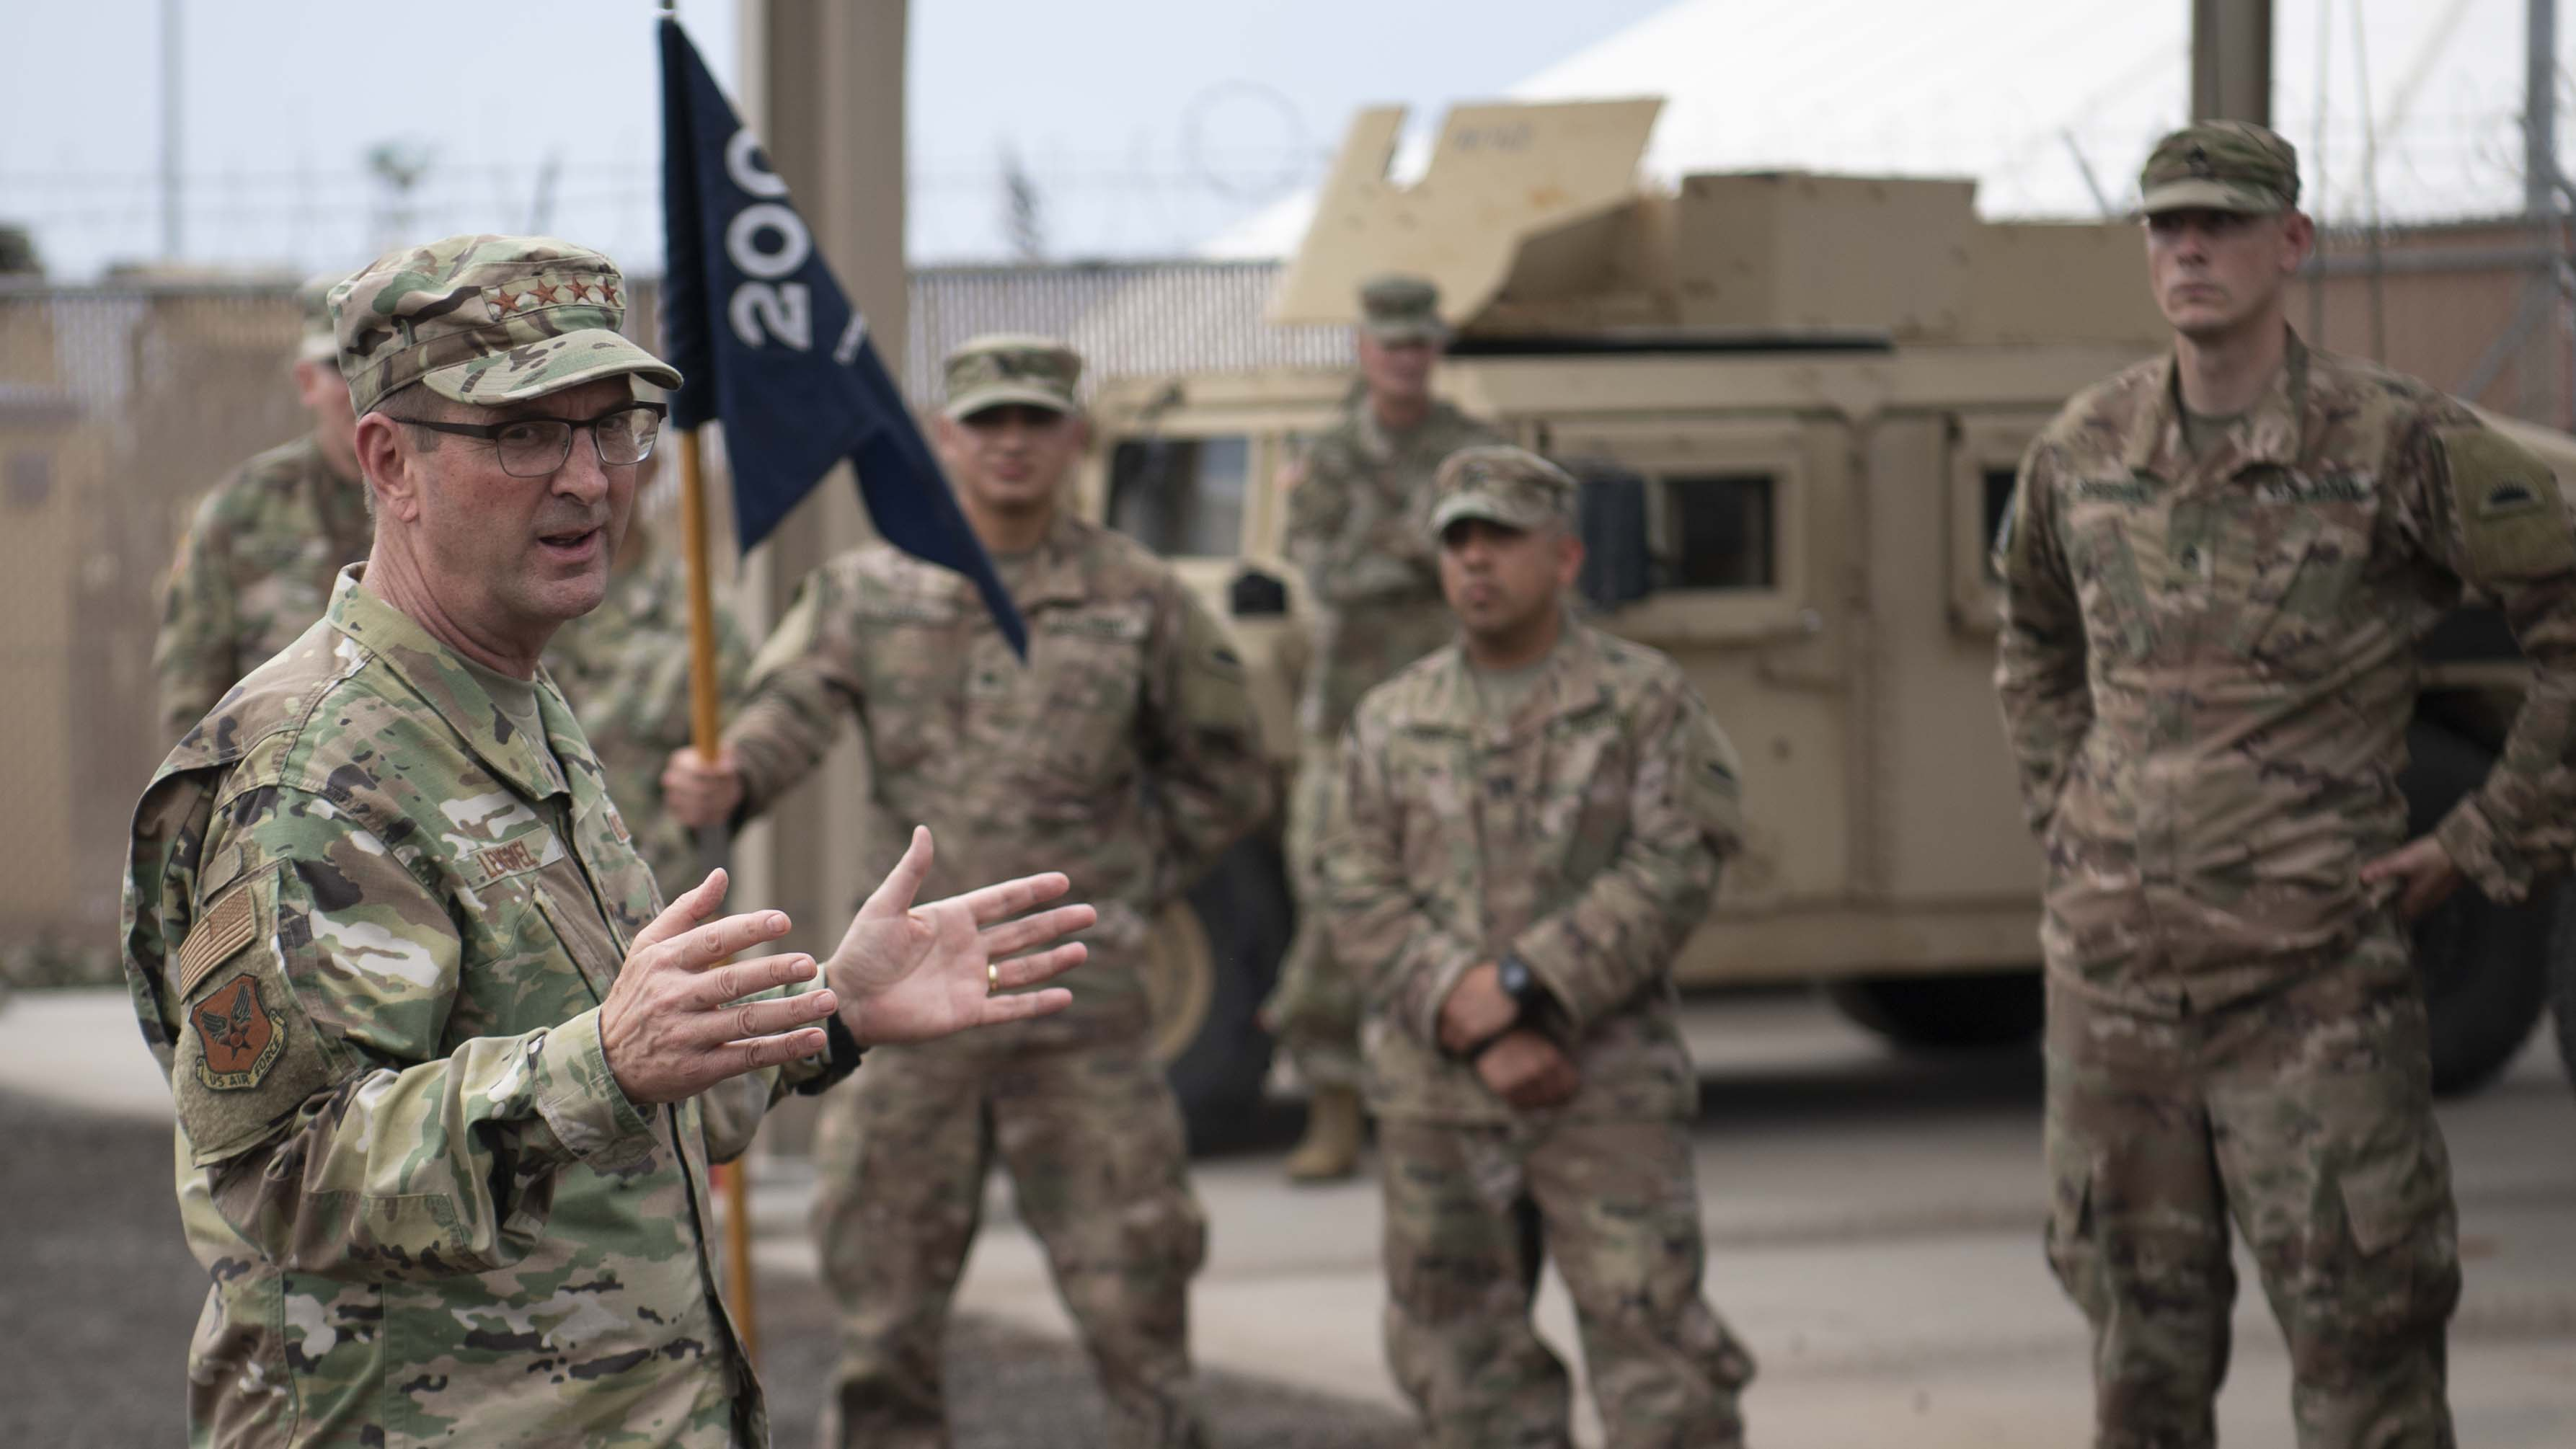 U.S. Air Force Gen. Joseph Lengyel, chief, National Guard Bureau, speaks to U.S. soldiers assigned to Combined Joint Task Force-Horn of Africa, Task Force-Guardian at Camp Lemonnier, Djibouti, Nov. 28, 2019. Lengyel visited Camp Lemonnier to meet with deployed National Guardsmen and other service members. (U.S. Air Force photo by Staff Sgt. J.D. Strong II)